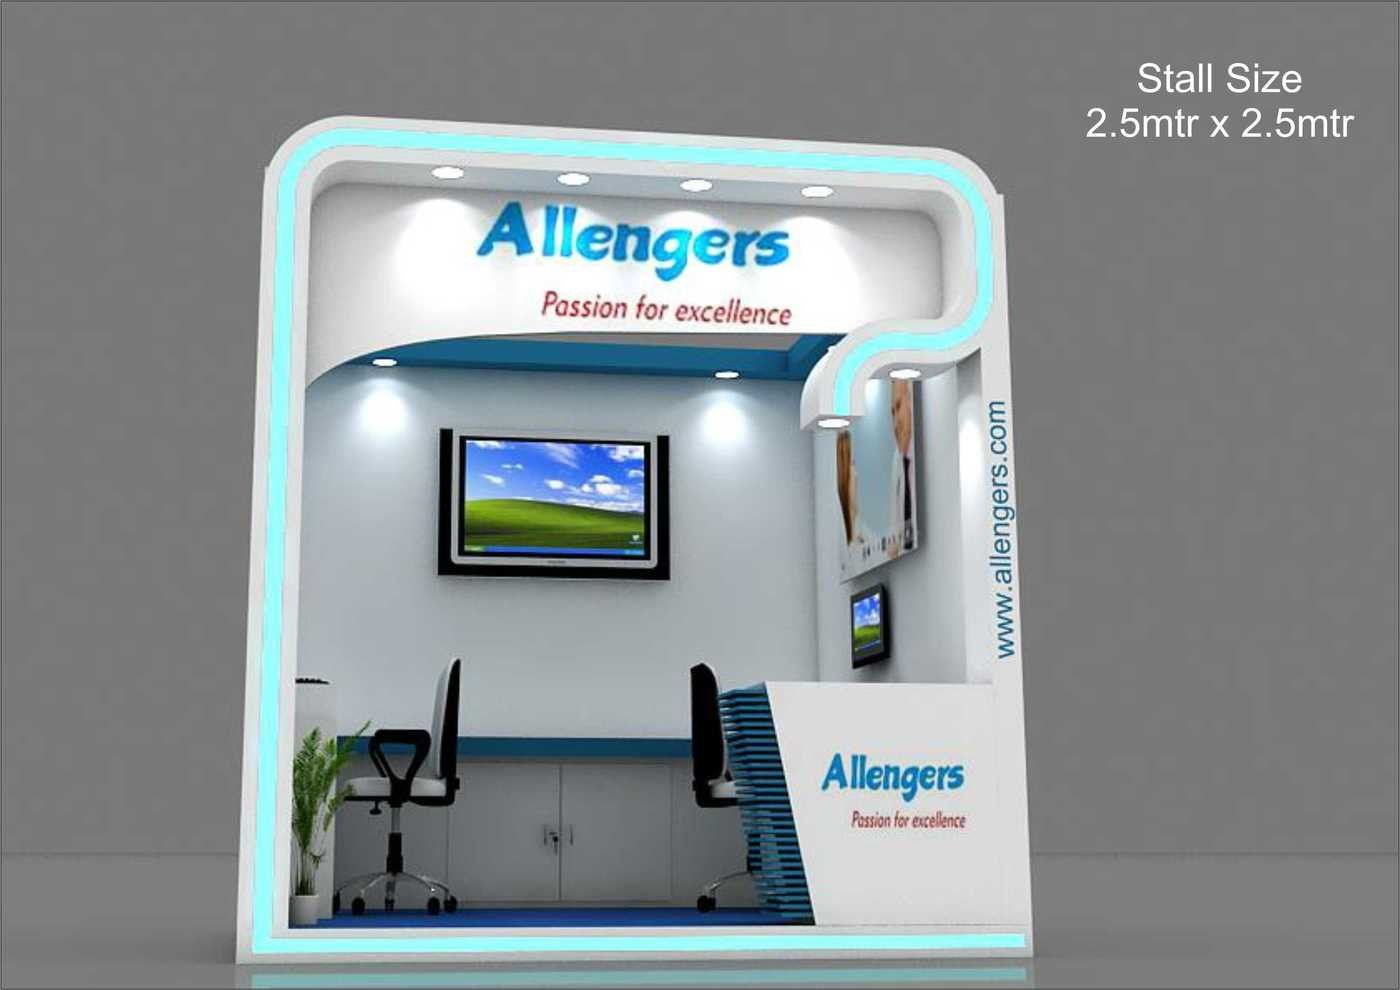 Small Exhibition Stand Sizes : Exhibition stalls work part 1 by mahender rawat at coroflot.com 1